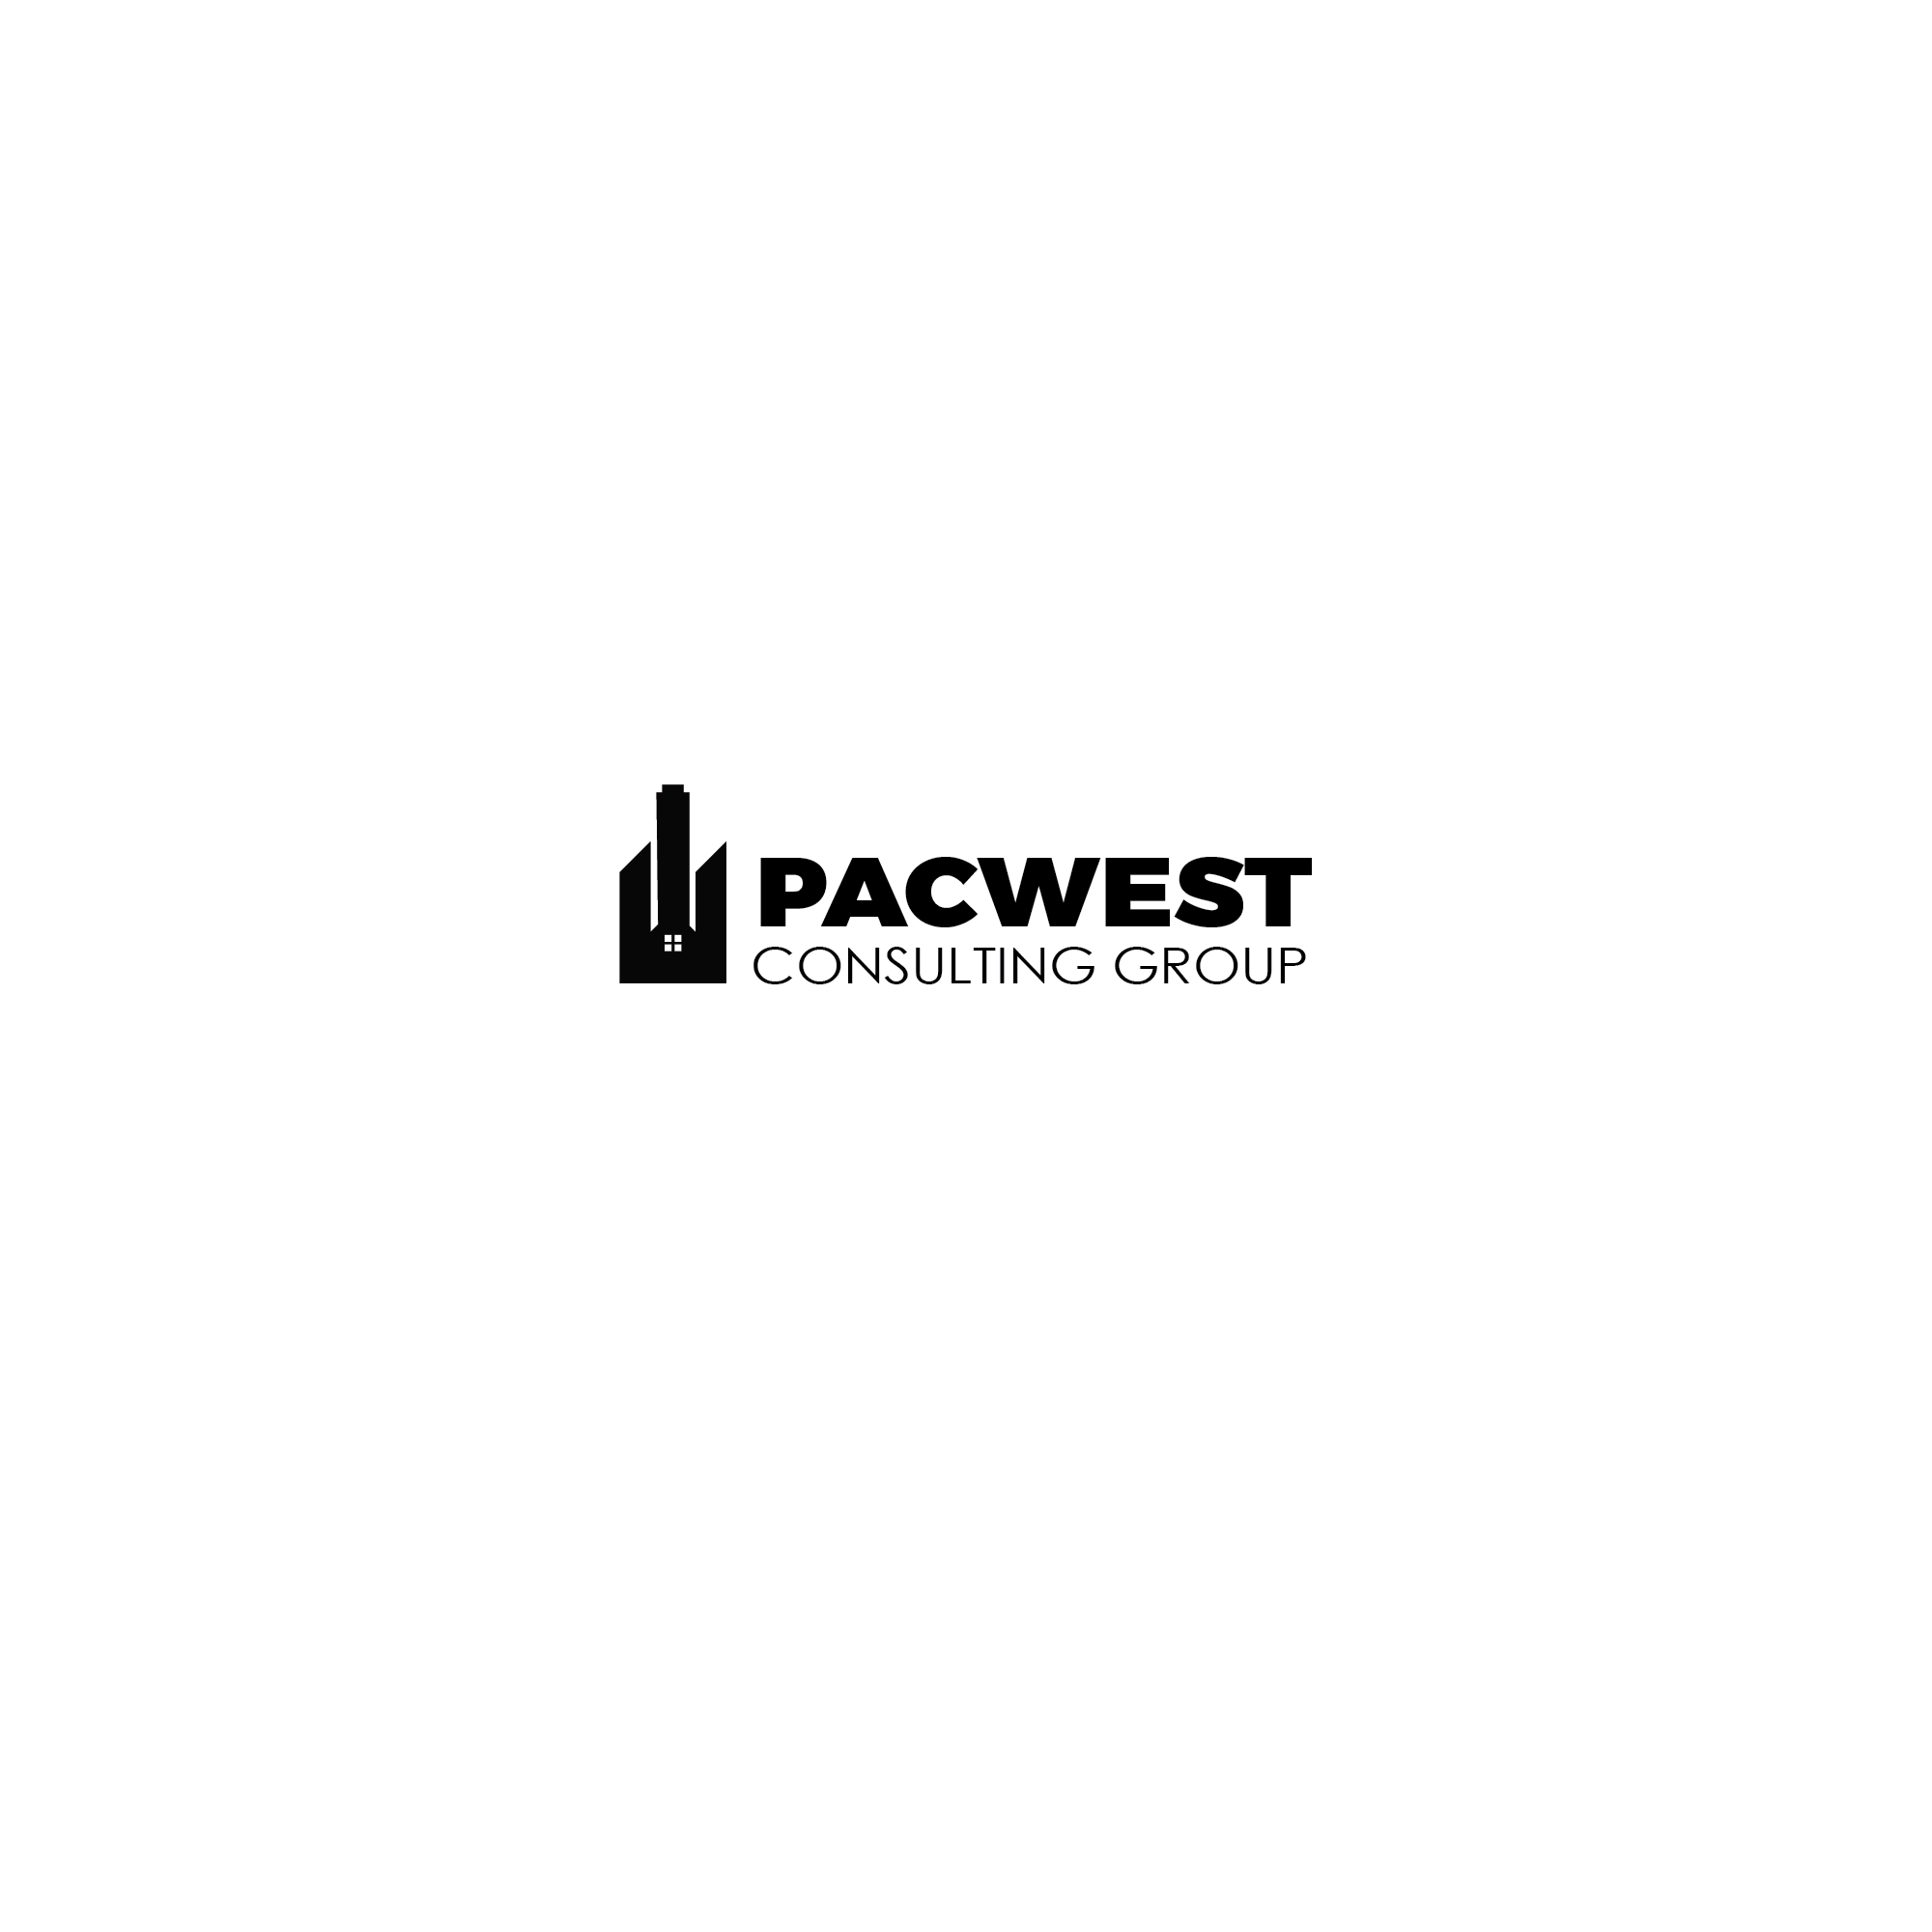 Logo Design by 354studio - Entry No. 30 in the Logo Design Contest Imaginative Logo Design for Pacwest Consulting Group.